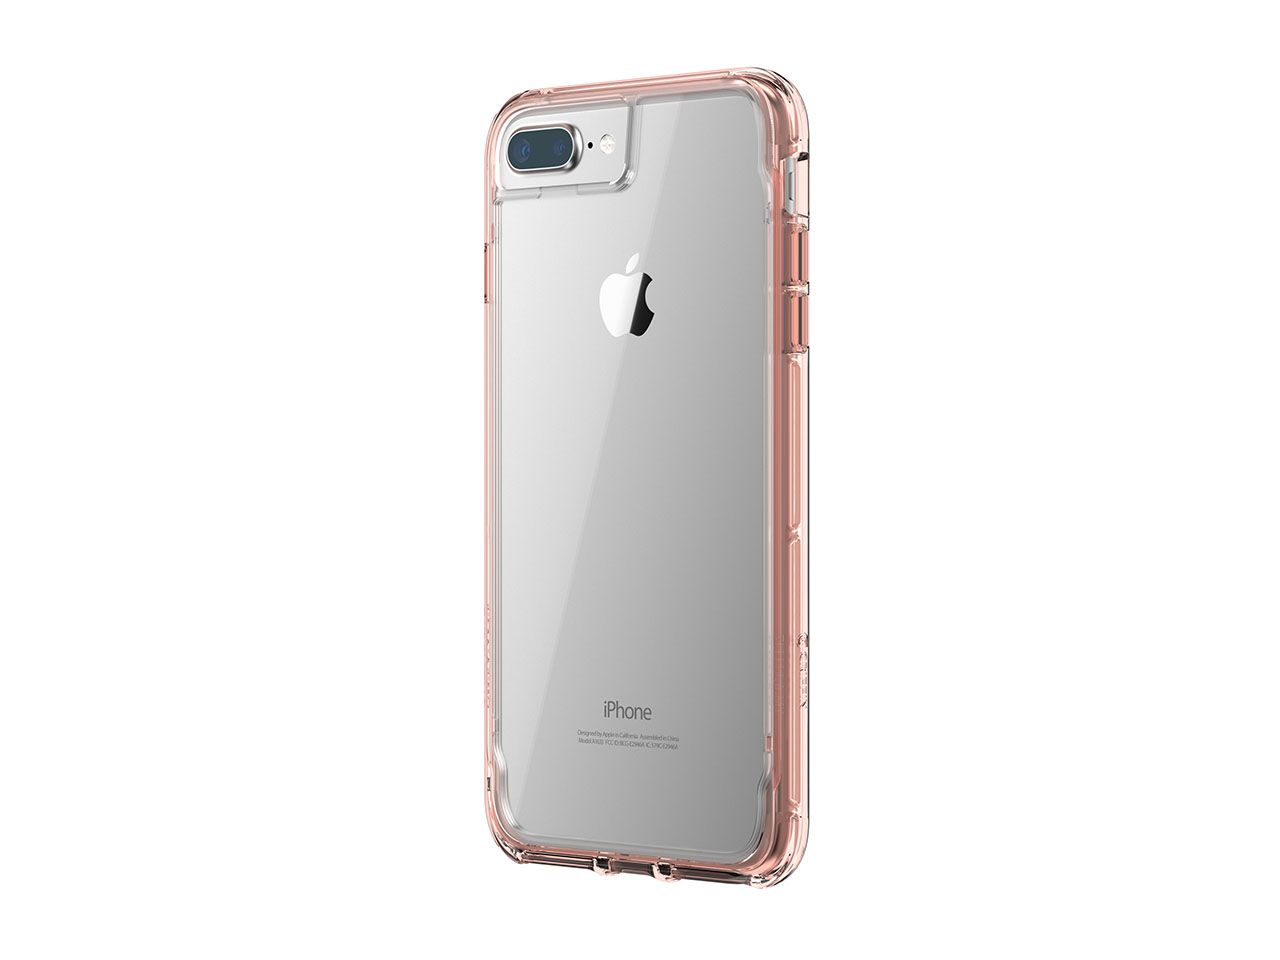 Griffin Survivor Case for iPhone 8 Plus, 7 Plus, 6s Plus, 6 Plus